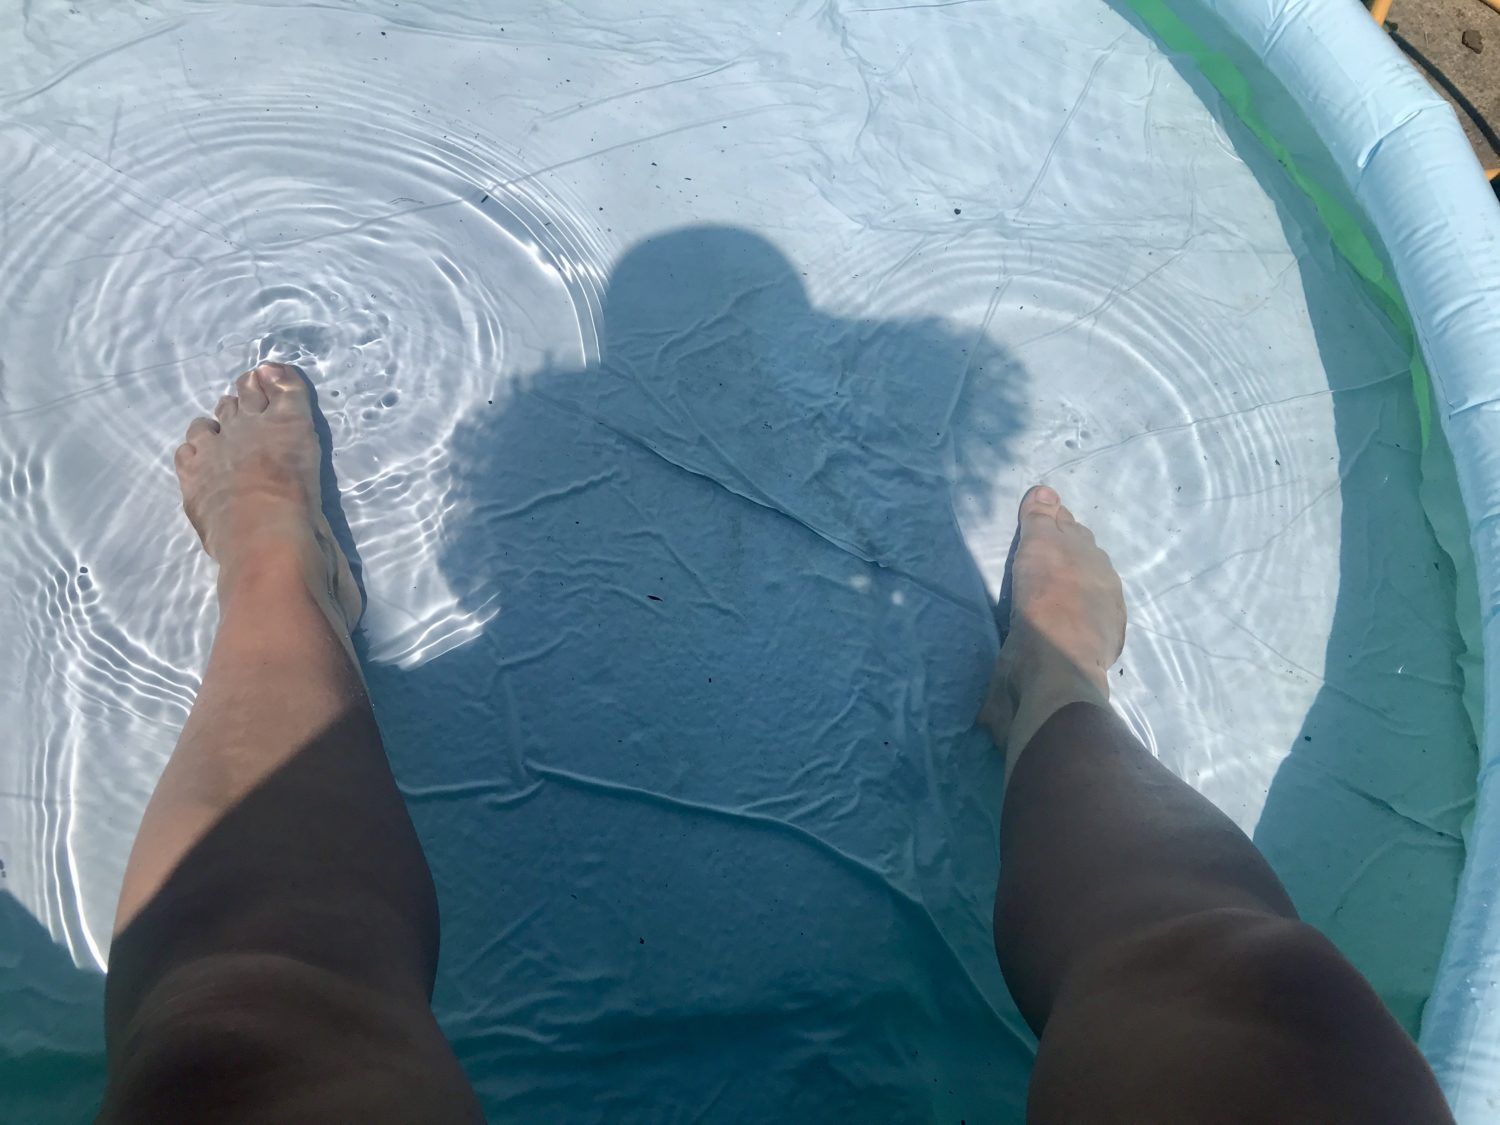 A picture of legs in a paddling pool and a shadow of a person with a hat reflected in the pool.